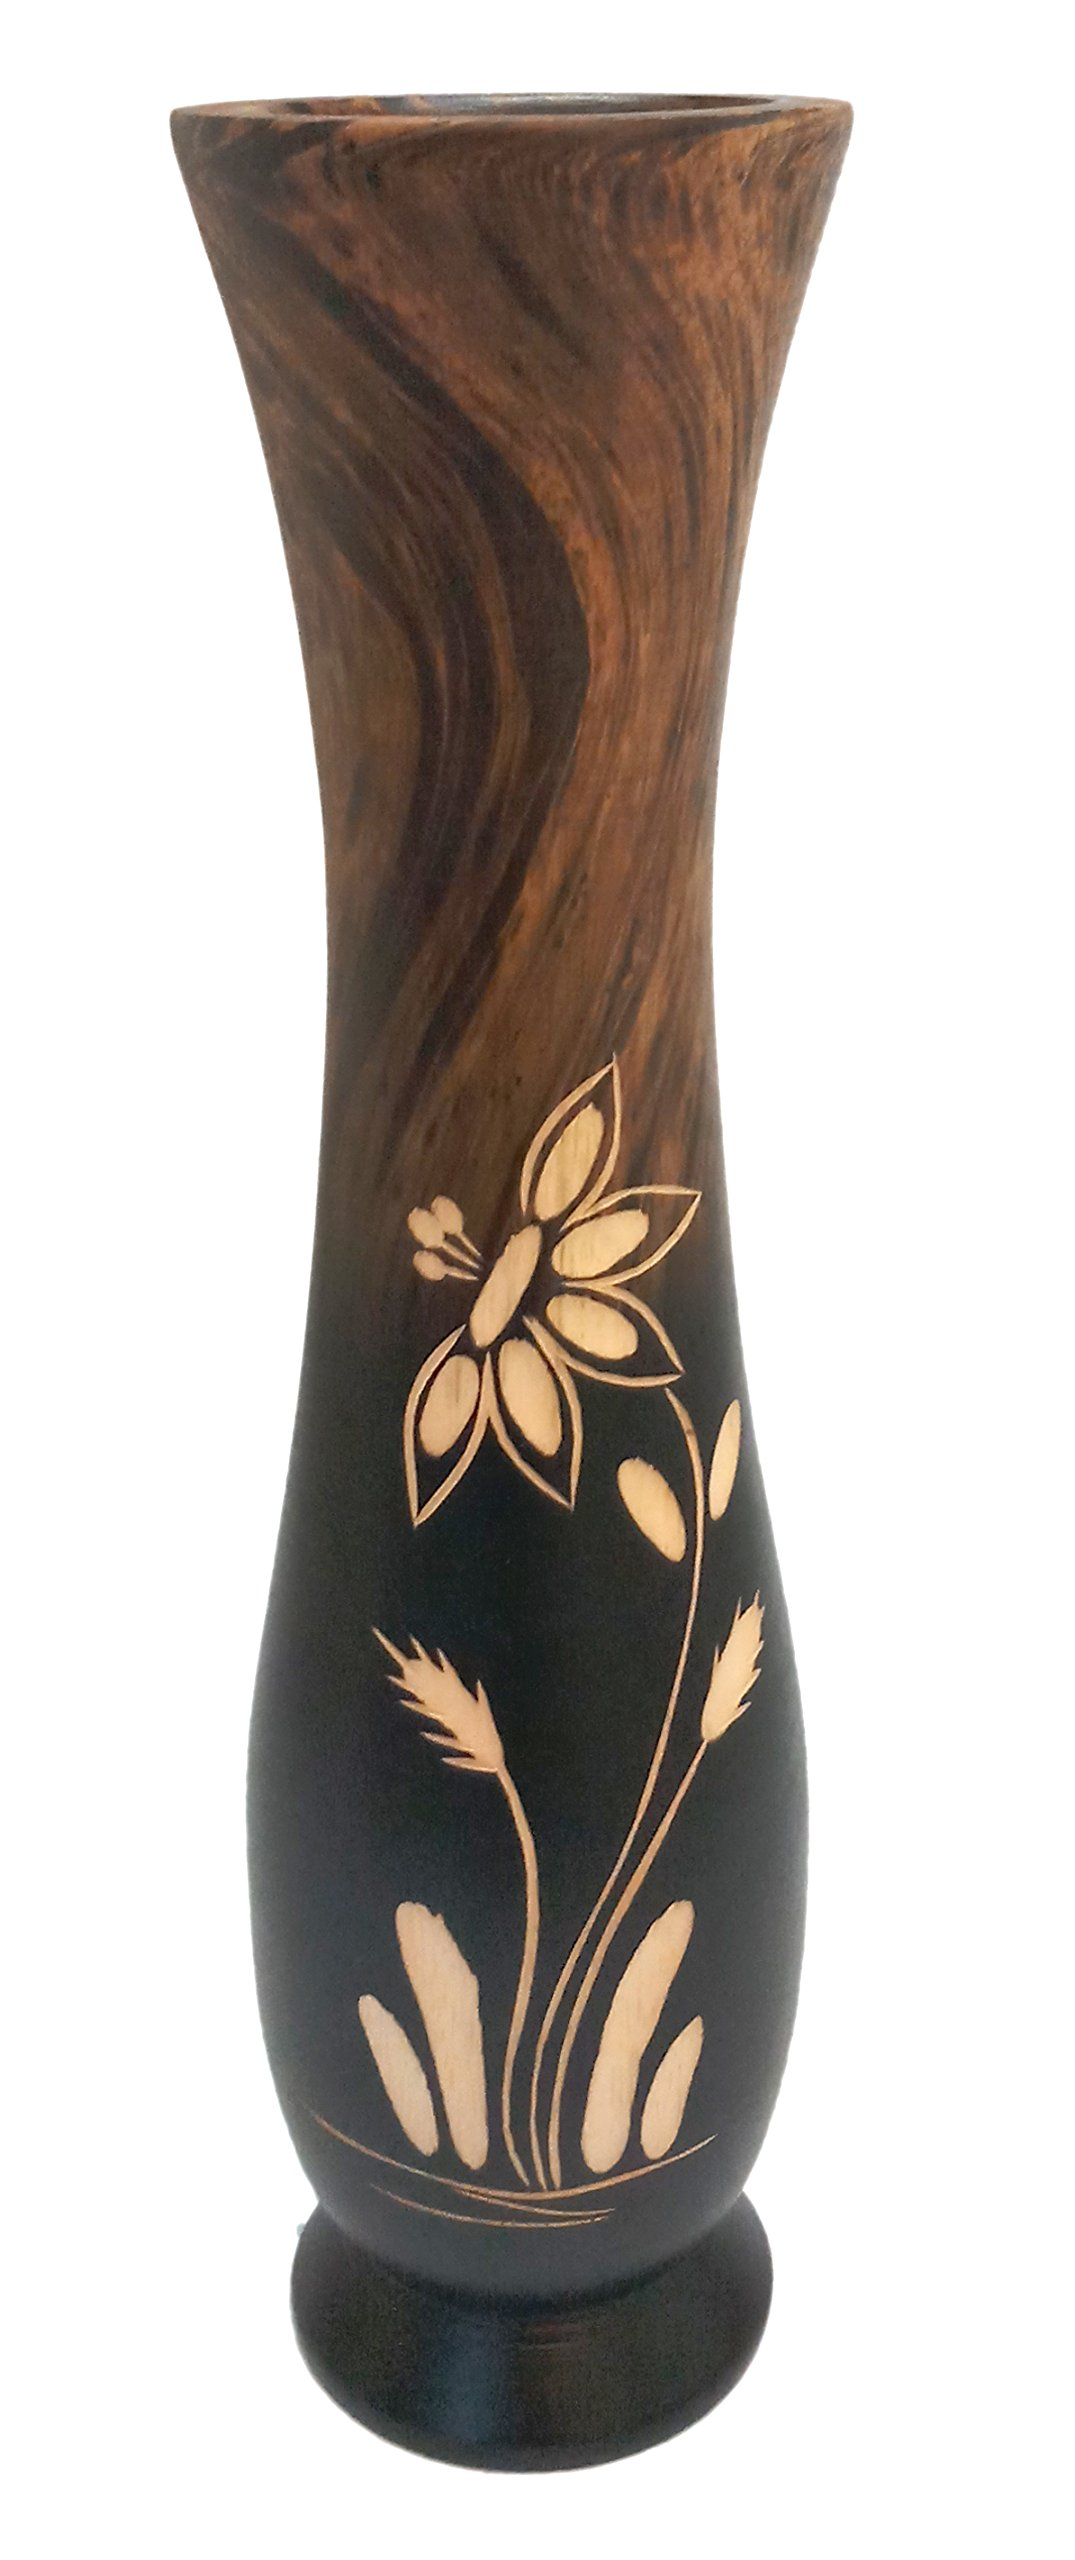 roro Handcarved Wood Floral Etched Vase, Two Tone Brown 12 inch by roro (Image #1)